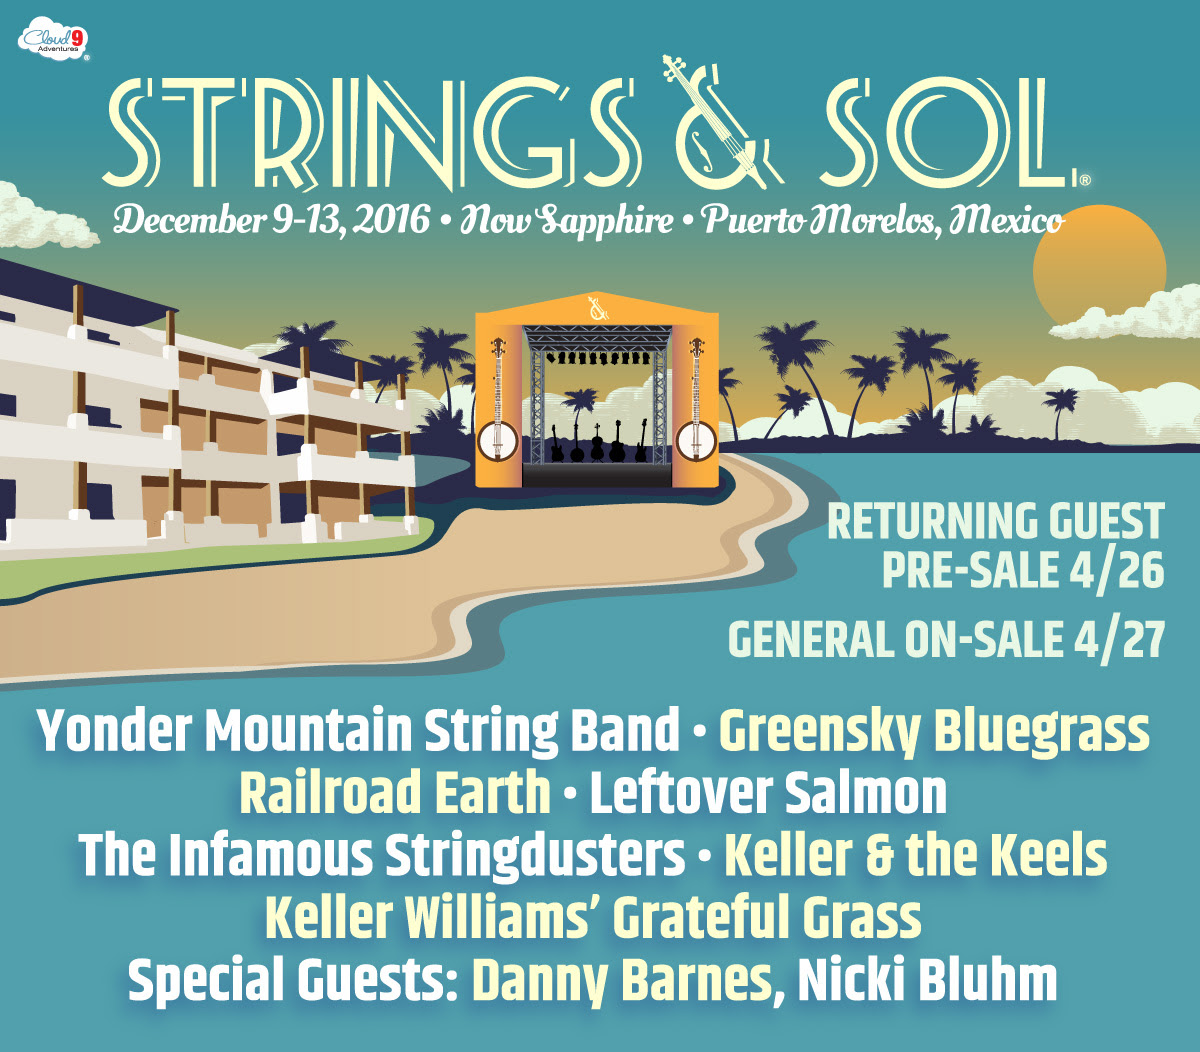 Strings & Sol - December 9 - 13, 2016 - Puerto Morelos, Mexico